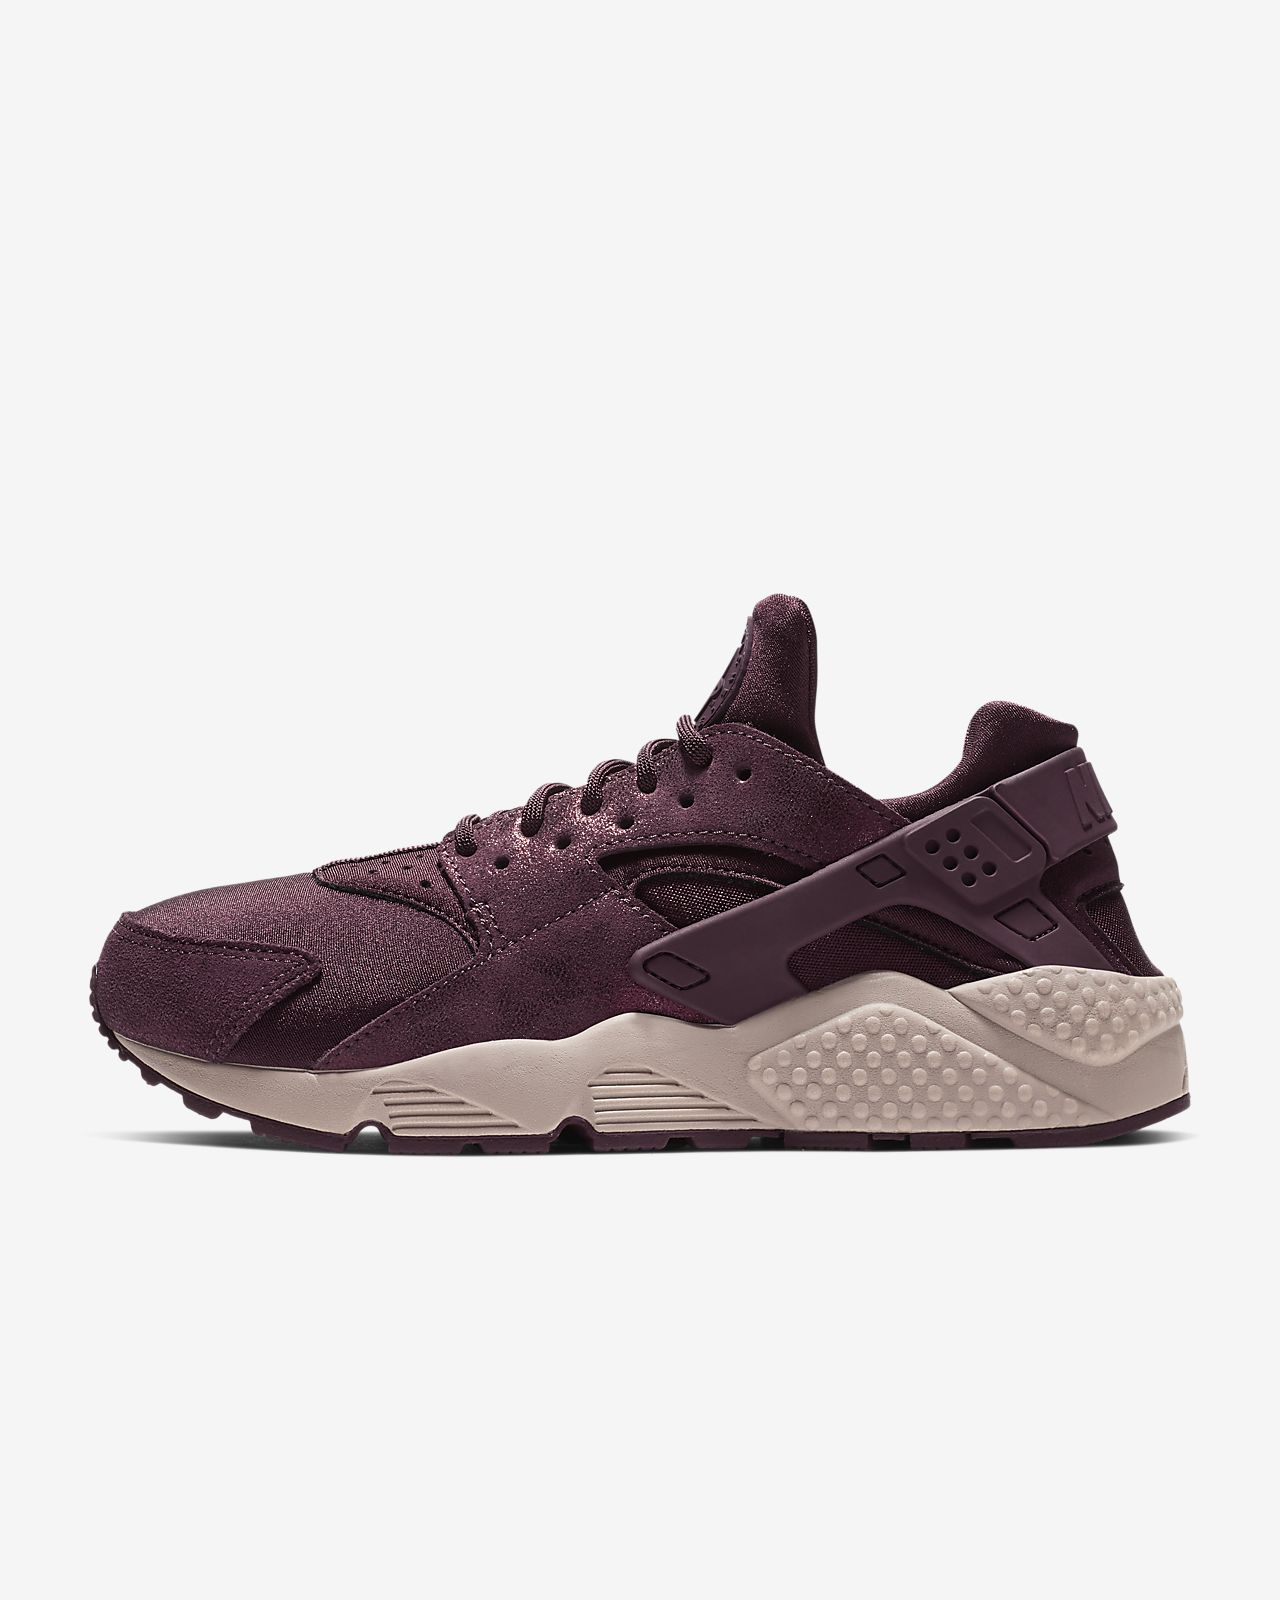 reputable site c7293 28ec0 ... Nike Air Huarache Run Womens Shoe